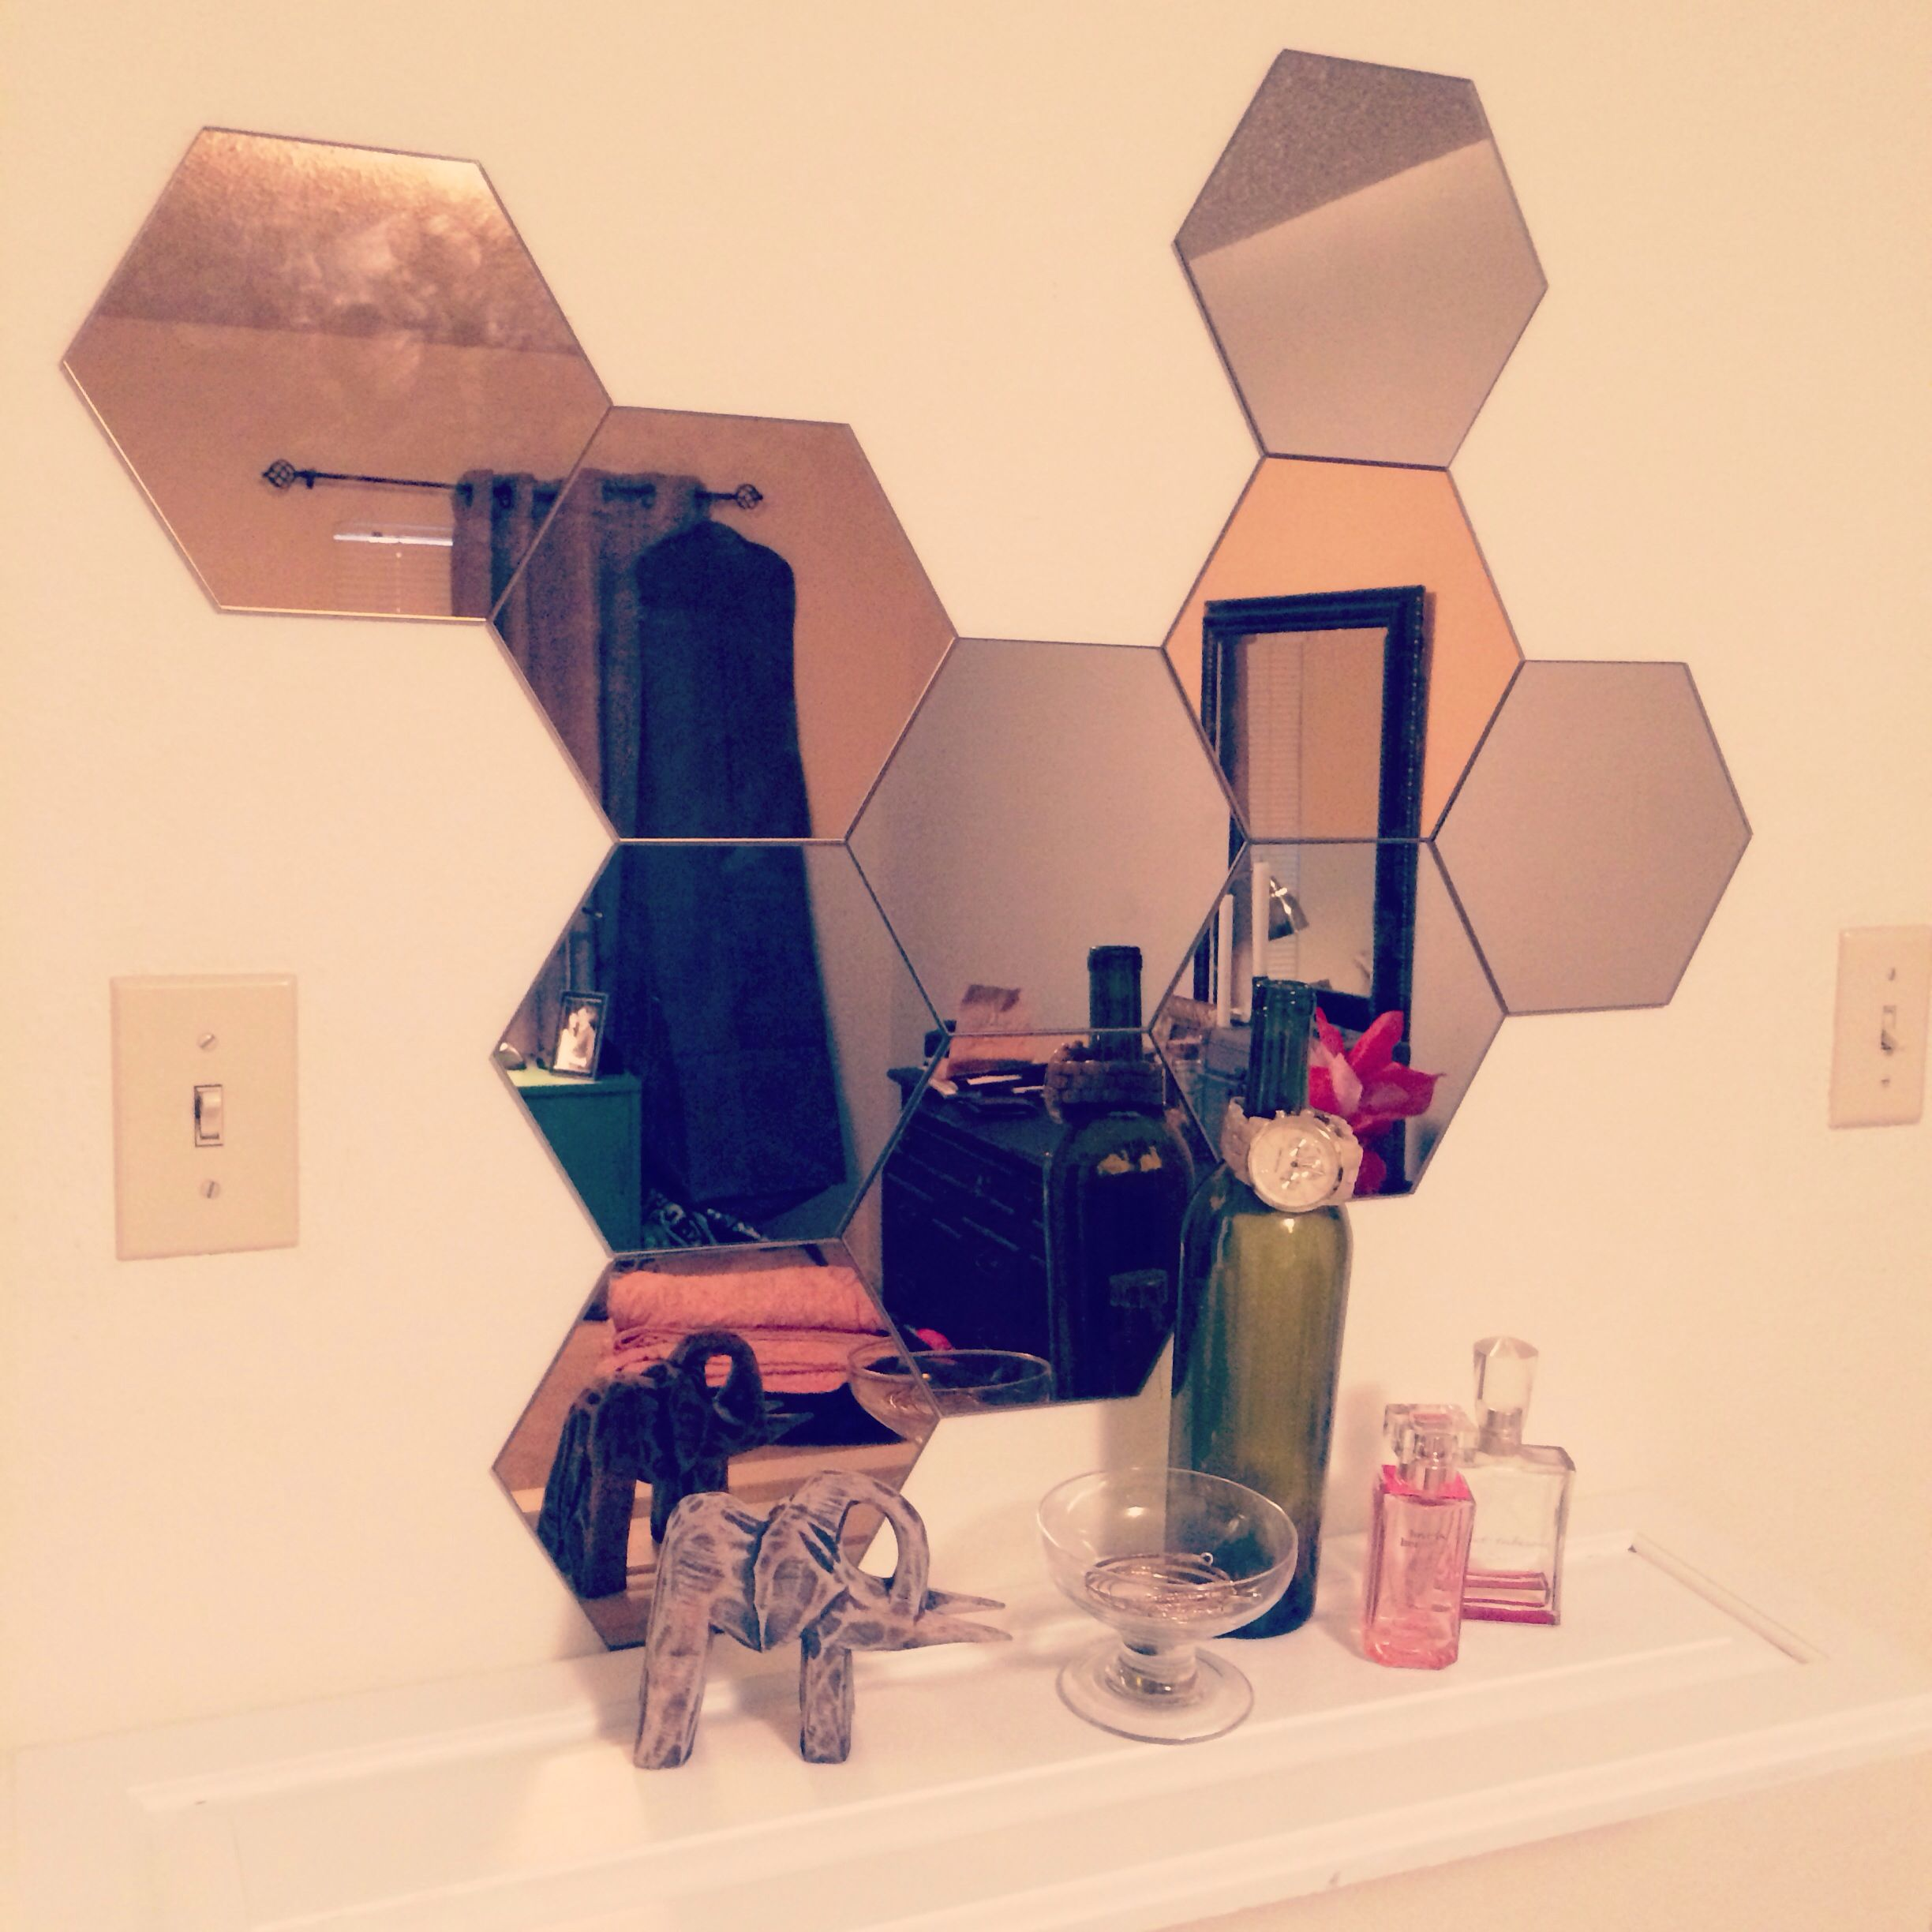 just installed ikea hexagon mirrors prettythings apartmentlife mirrors bolig diy pinterest. Black Bedroom Furniture Sets. Home Design Ideas